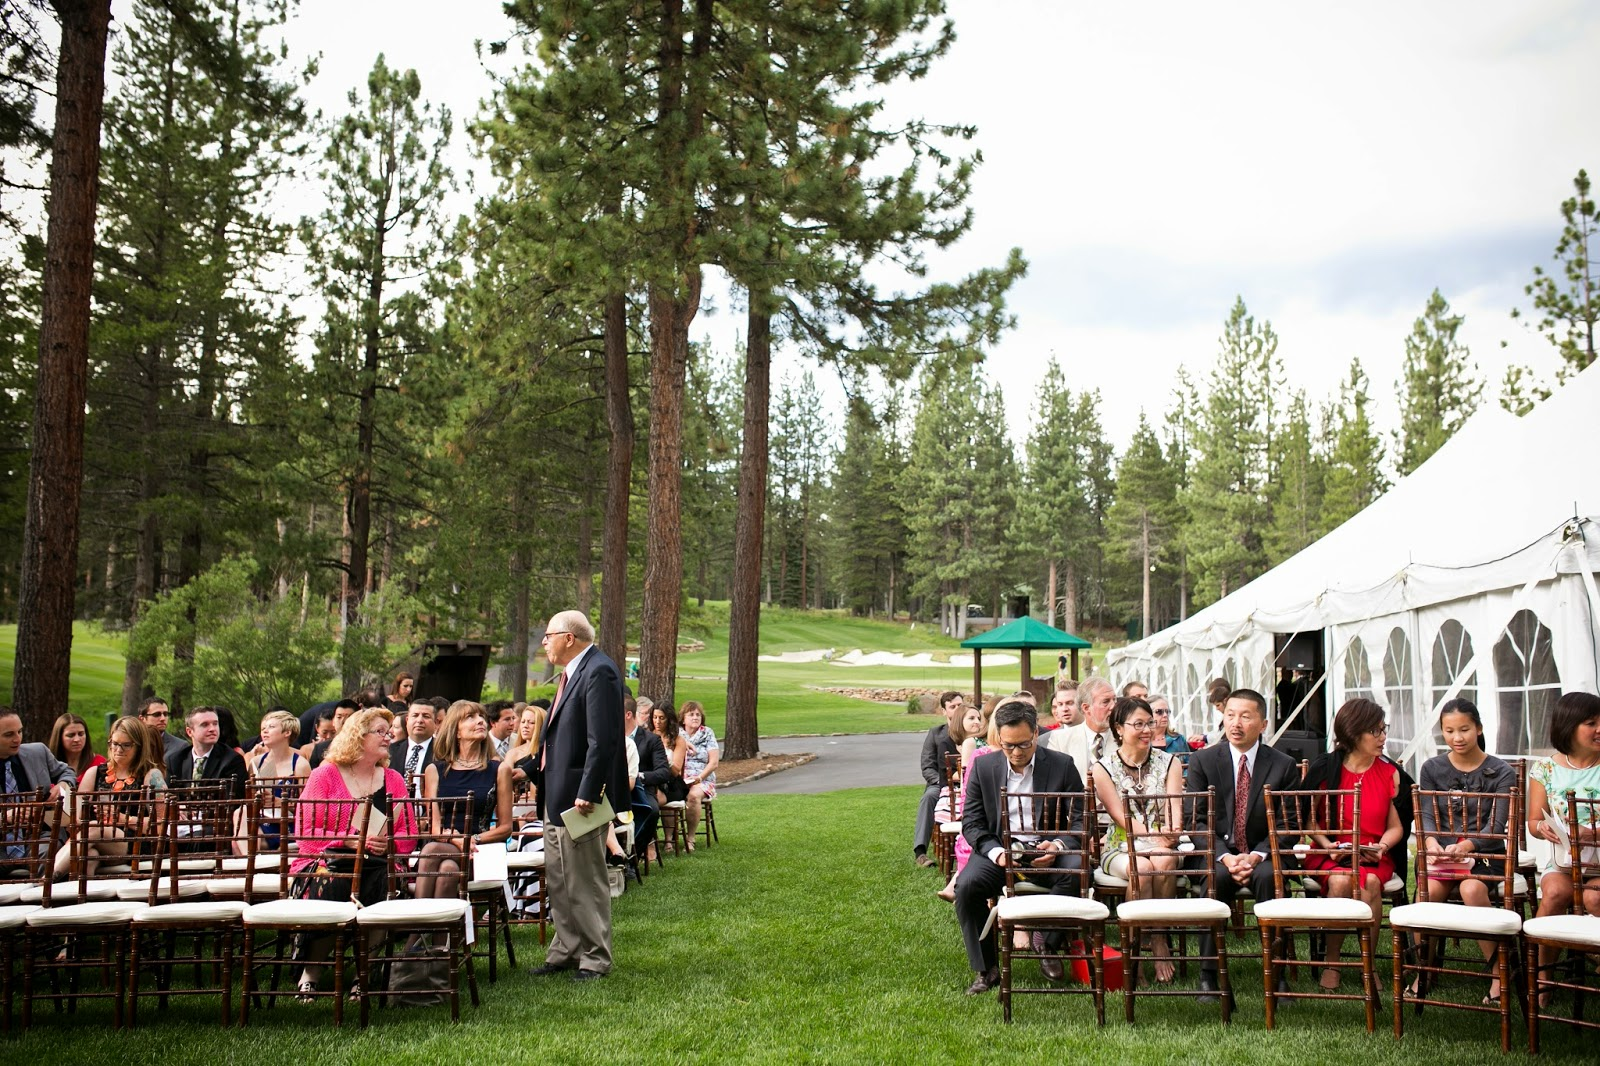 Tahoe Mountain Wedding Ceremony // Kacie Jean Photography // Take the Cake Event Planning